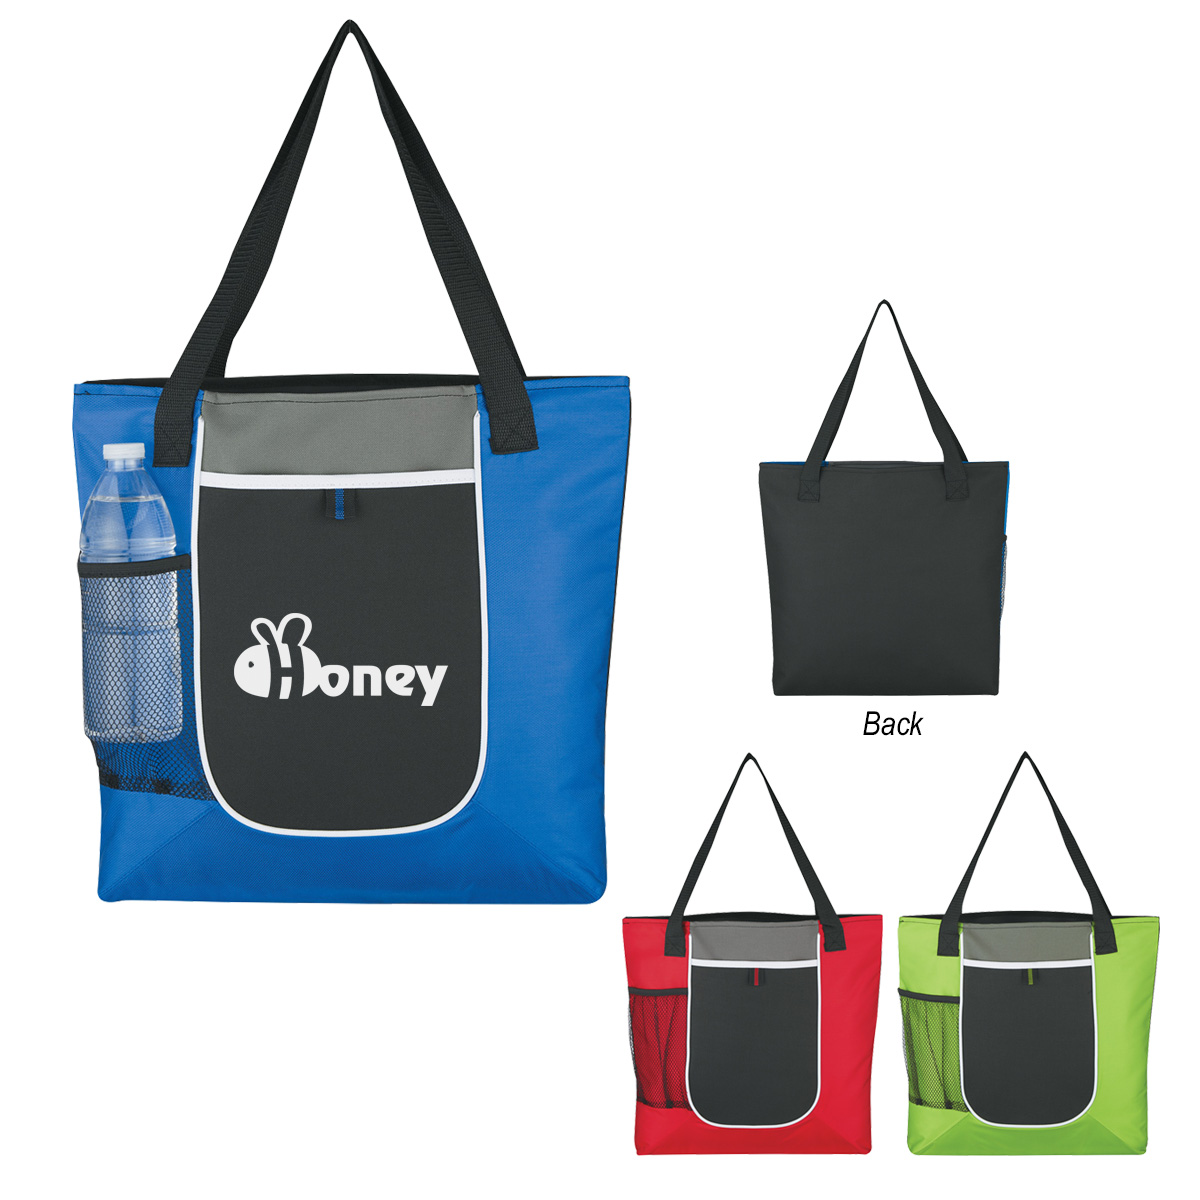 #CM 3141 Roundabout Tote Bag